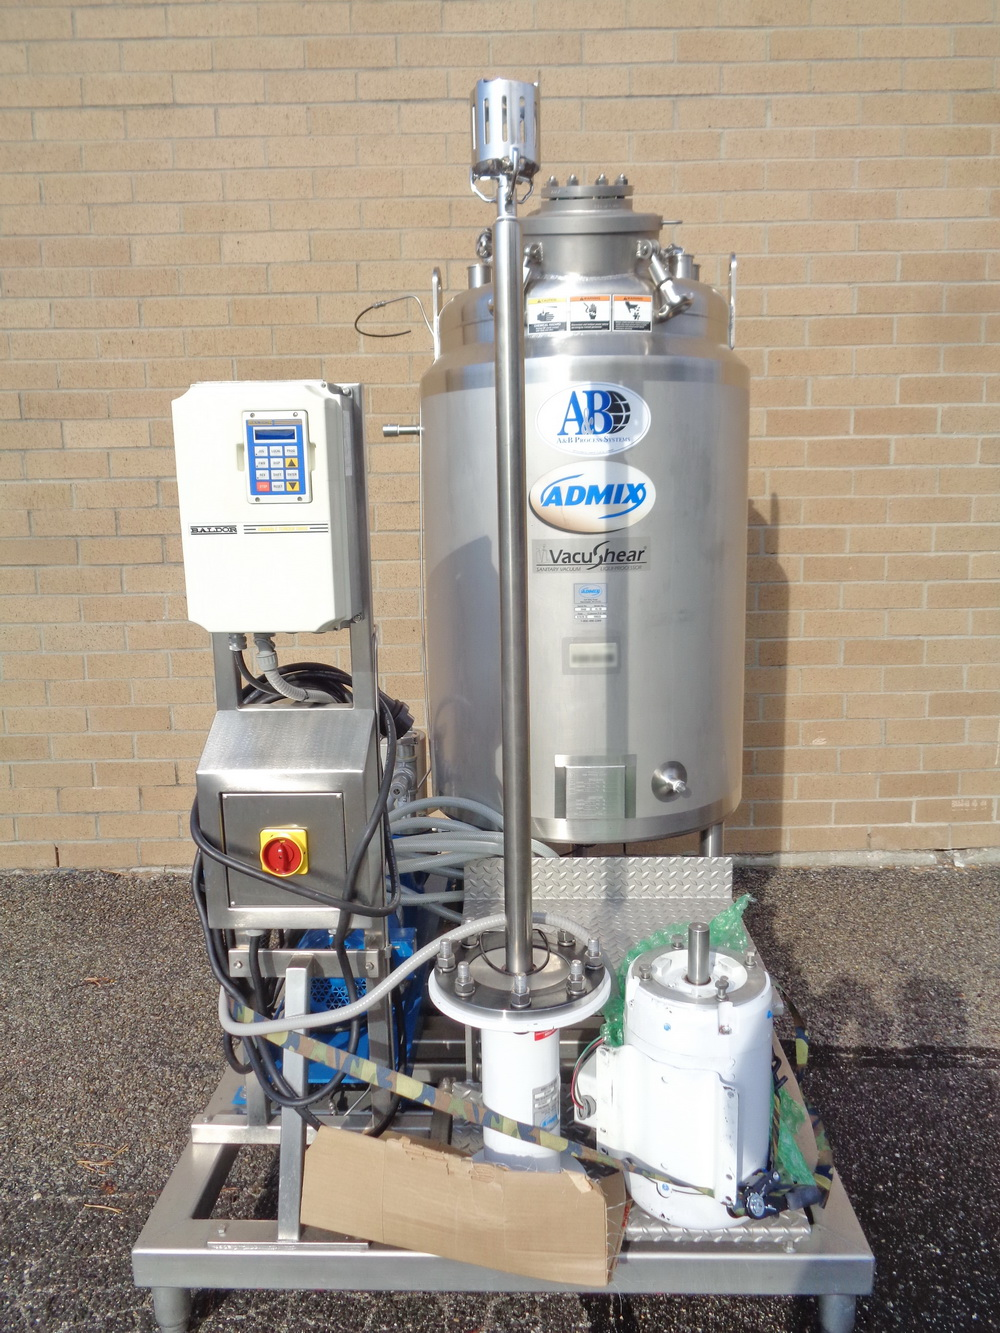 Lot 4 - Admix SS Jacketed Vacuum High Shear Mixing System, Model VacuShear